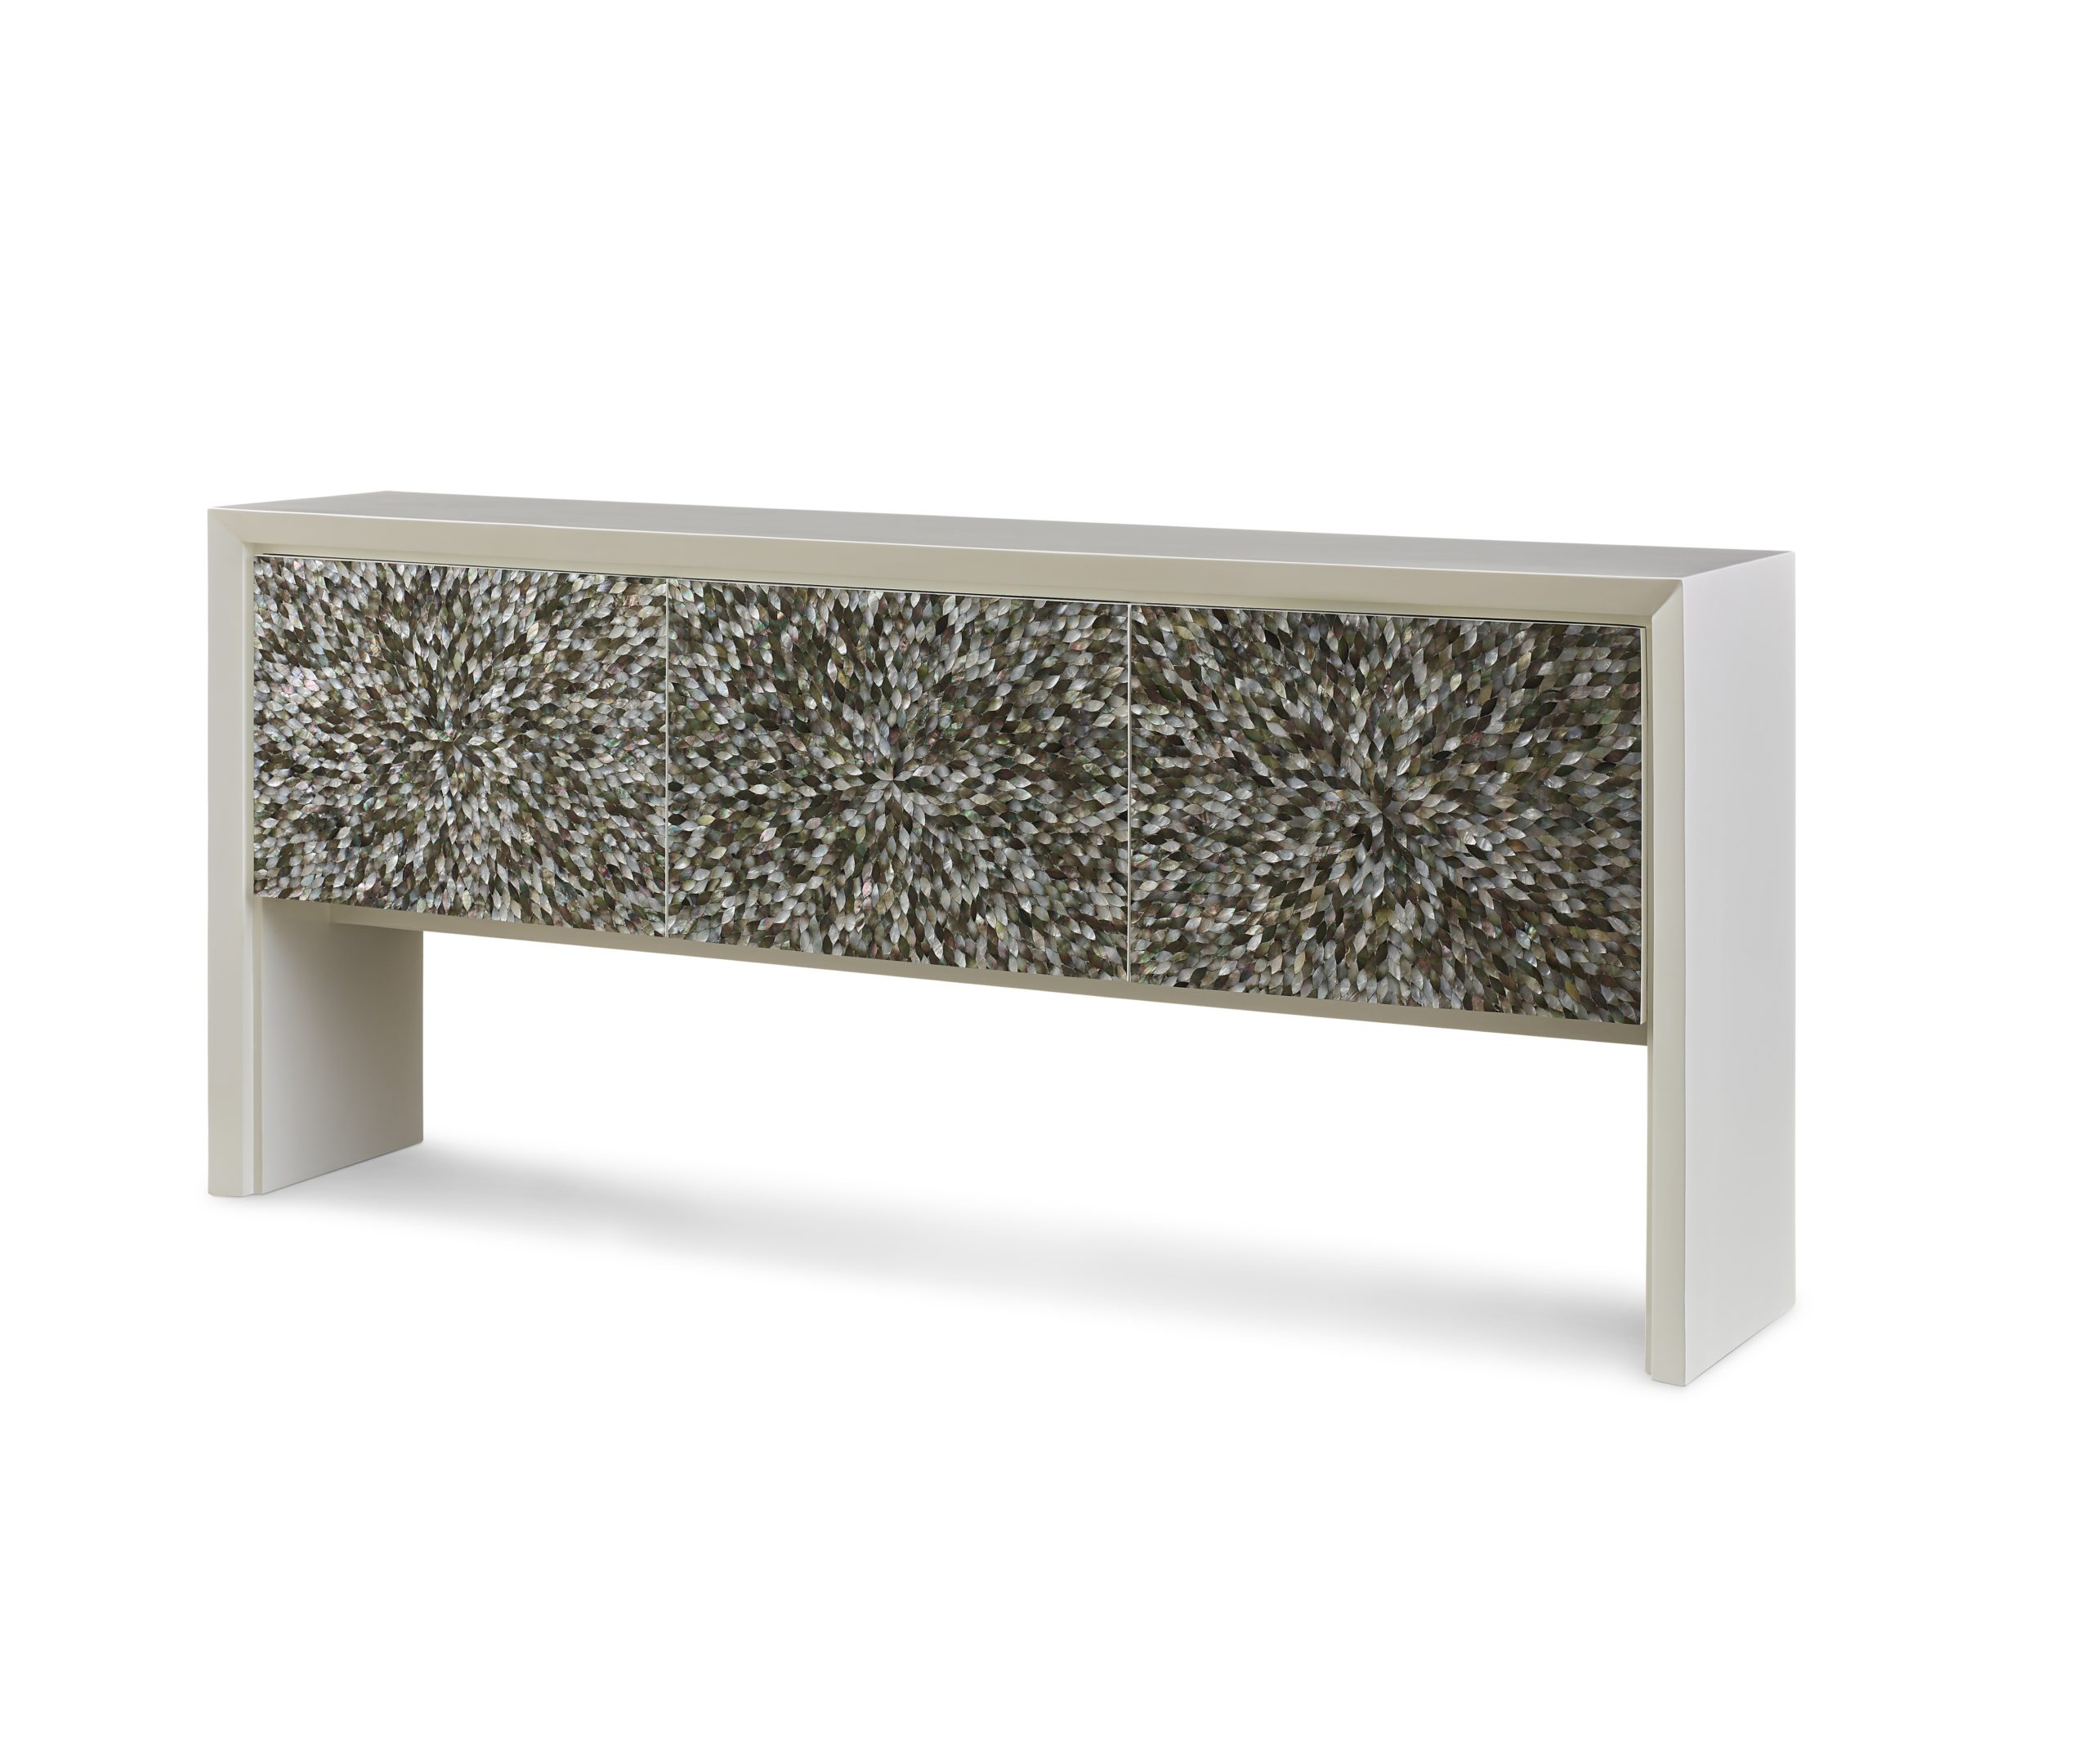 Baker_products_WNWN_nacre_sideboard_BAA3230_FRONT_3QRT-scaled-1